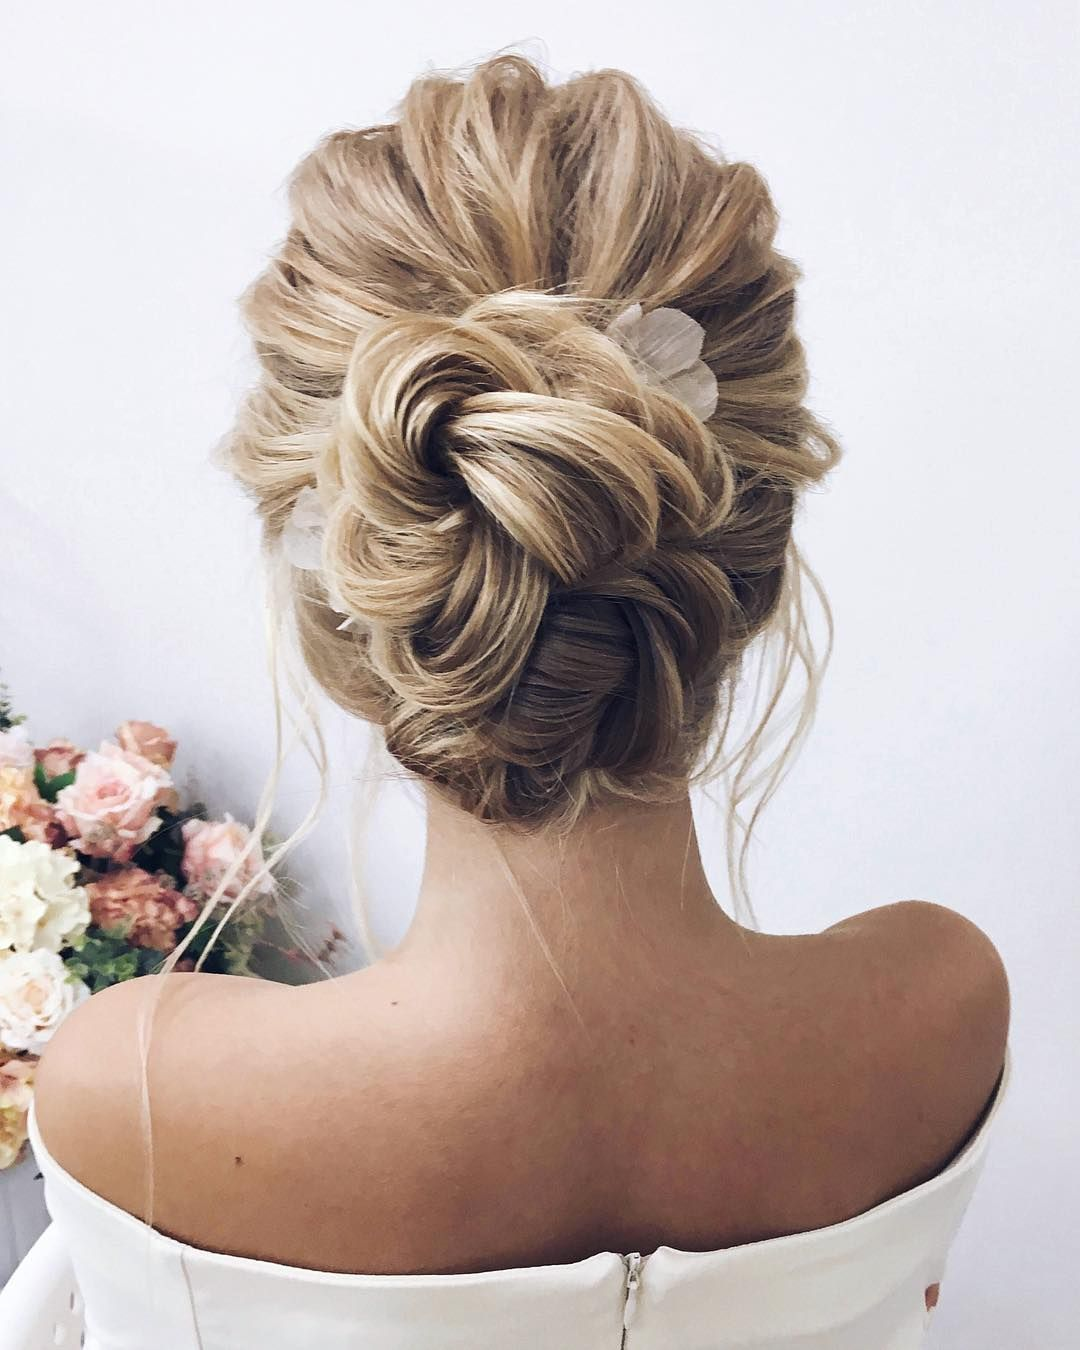 55 amazing updo hairstyle with the wow factor | coafuri